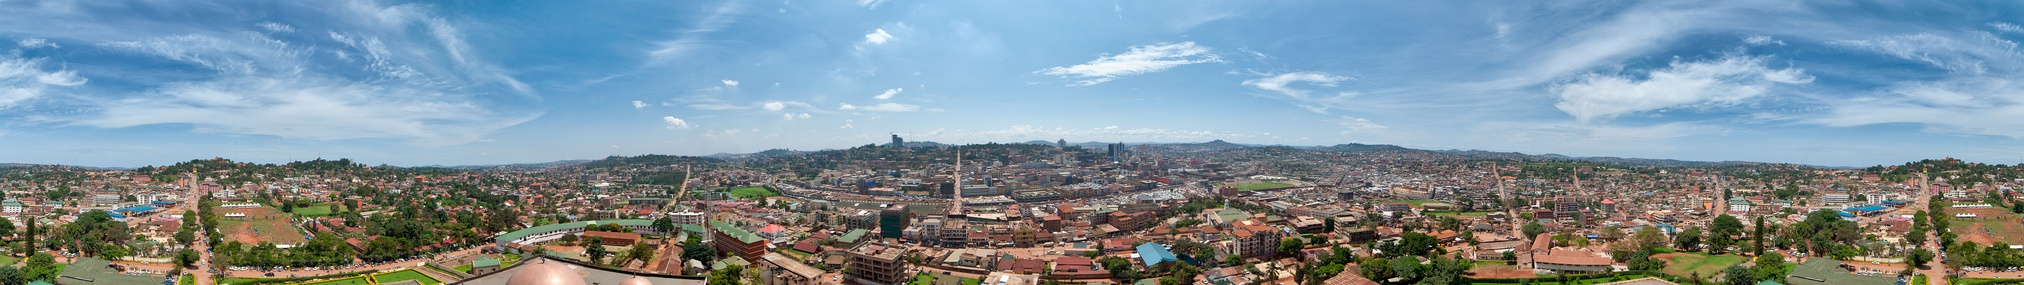 360-degree Kampala City panorama from the Old Gadafi Mosque